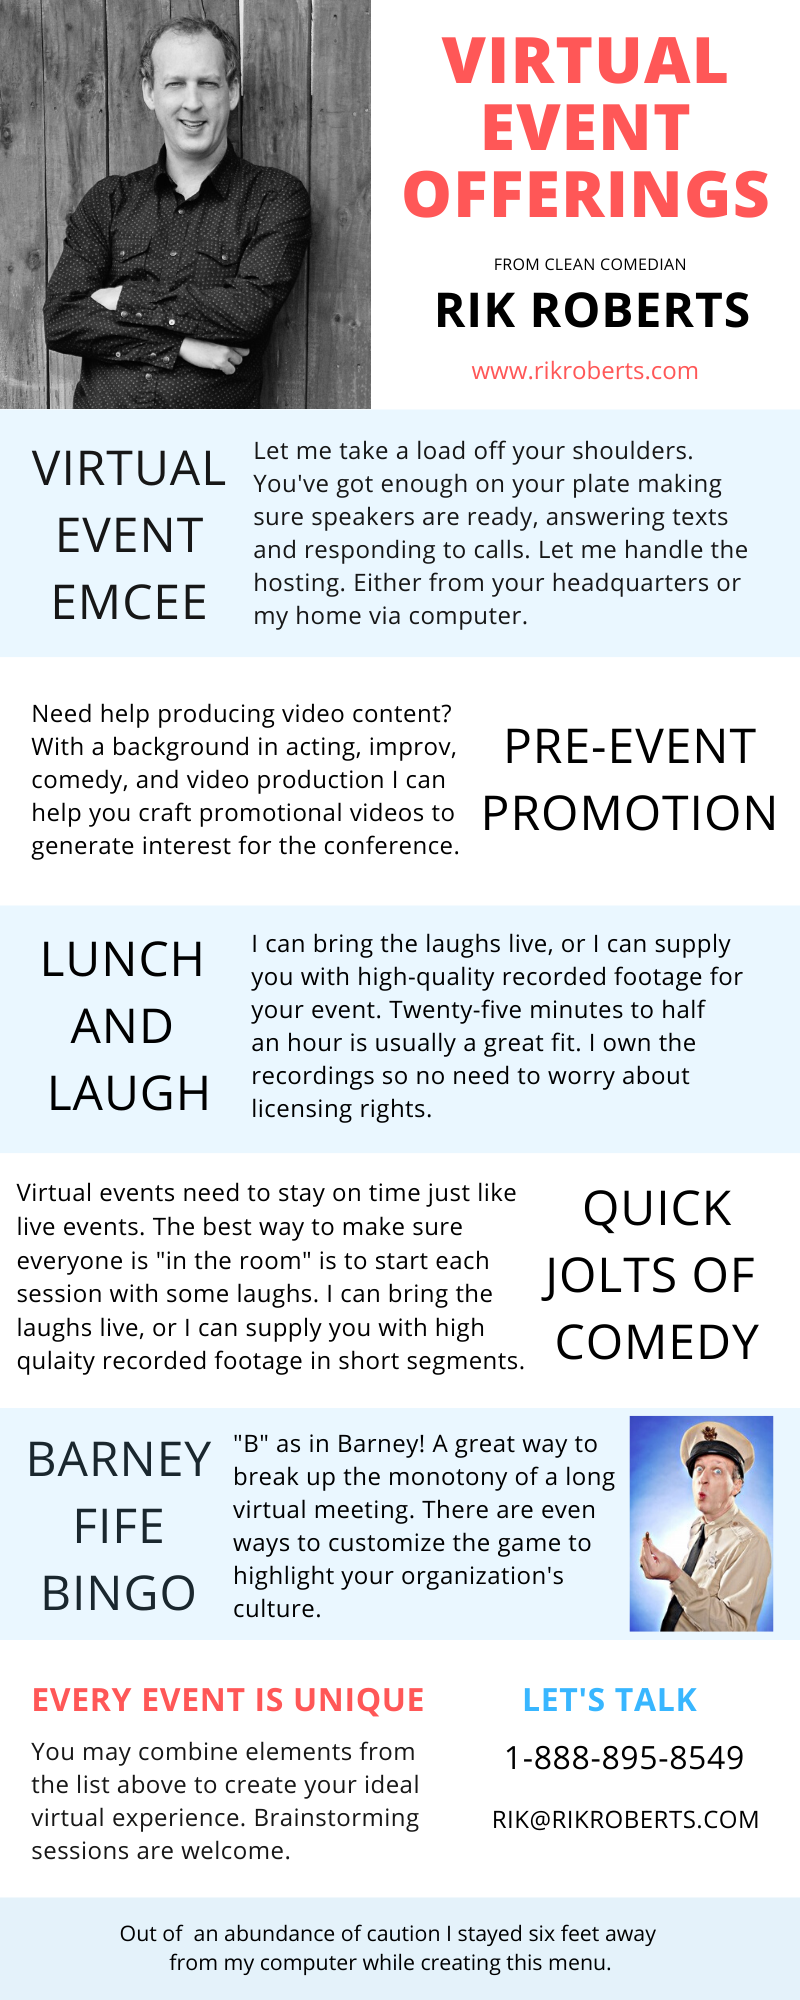 Virtual Event Offerings from Clean Comedian Rik Roberts